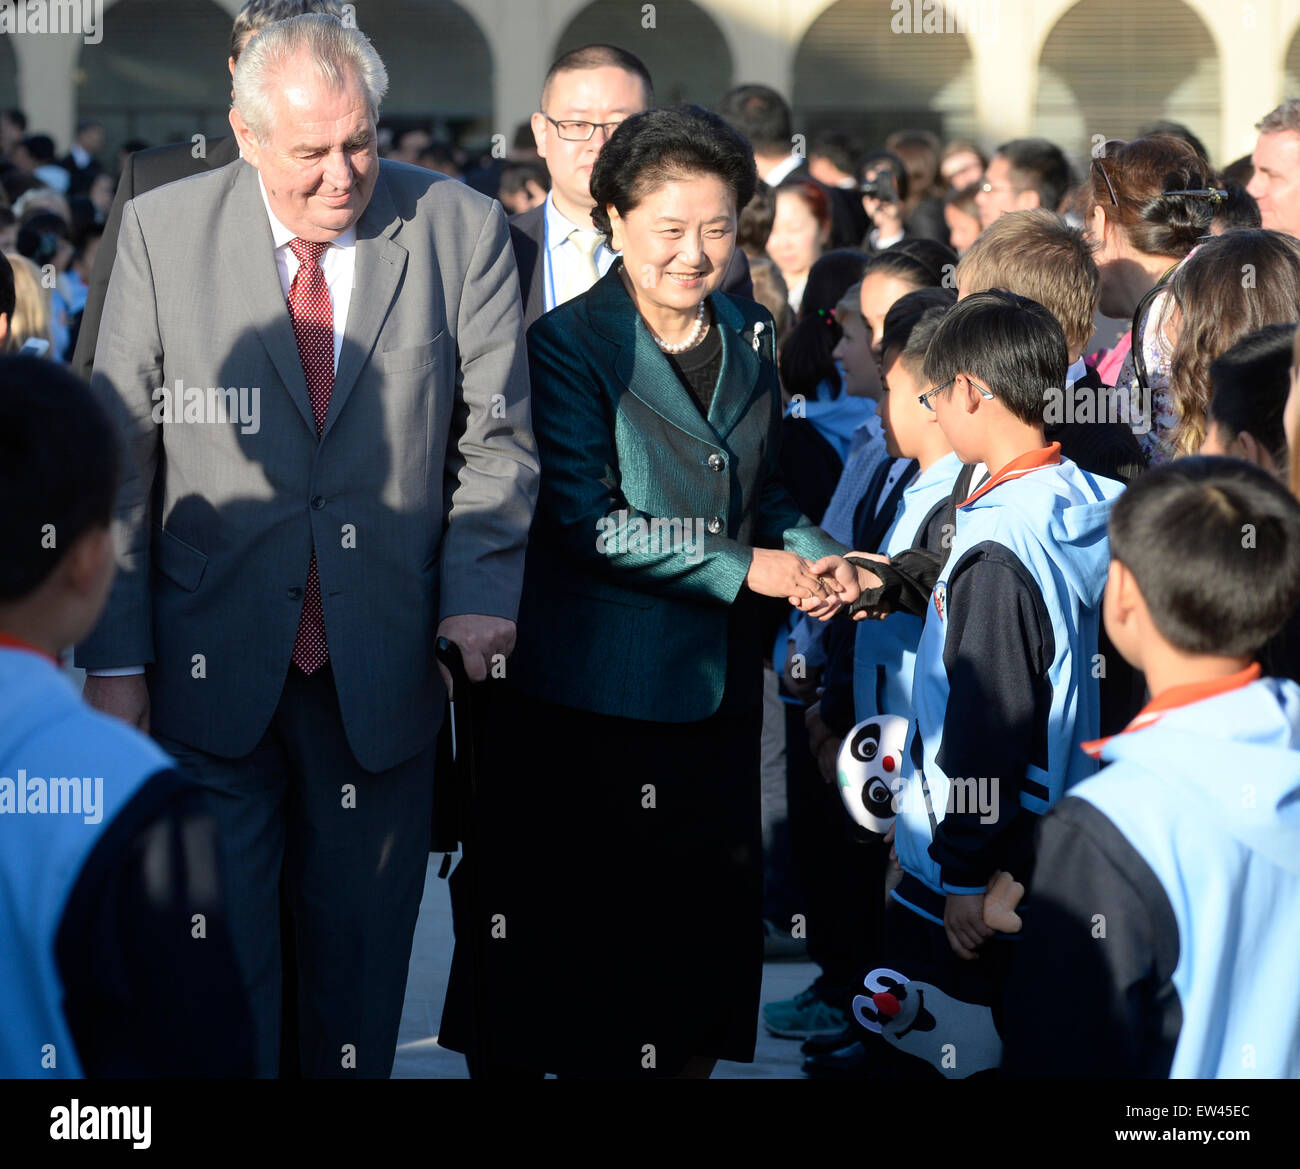 Czech president Milos Zeman, left, and Chinese Vice-Premier Liu Yandong, right, attend screening of the new TV serie - Stock Image